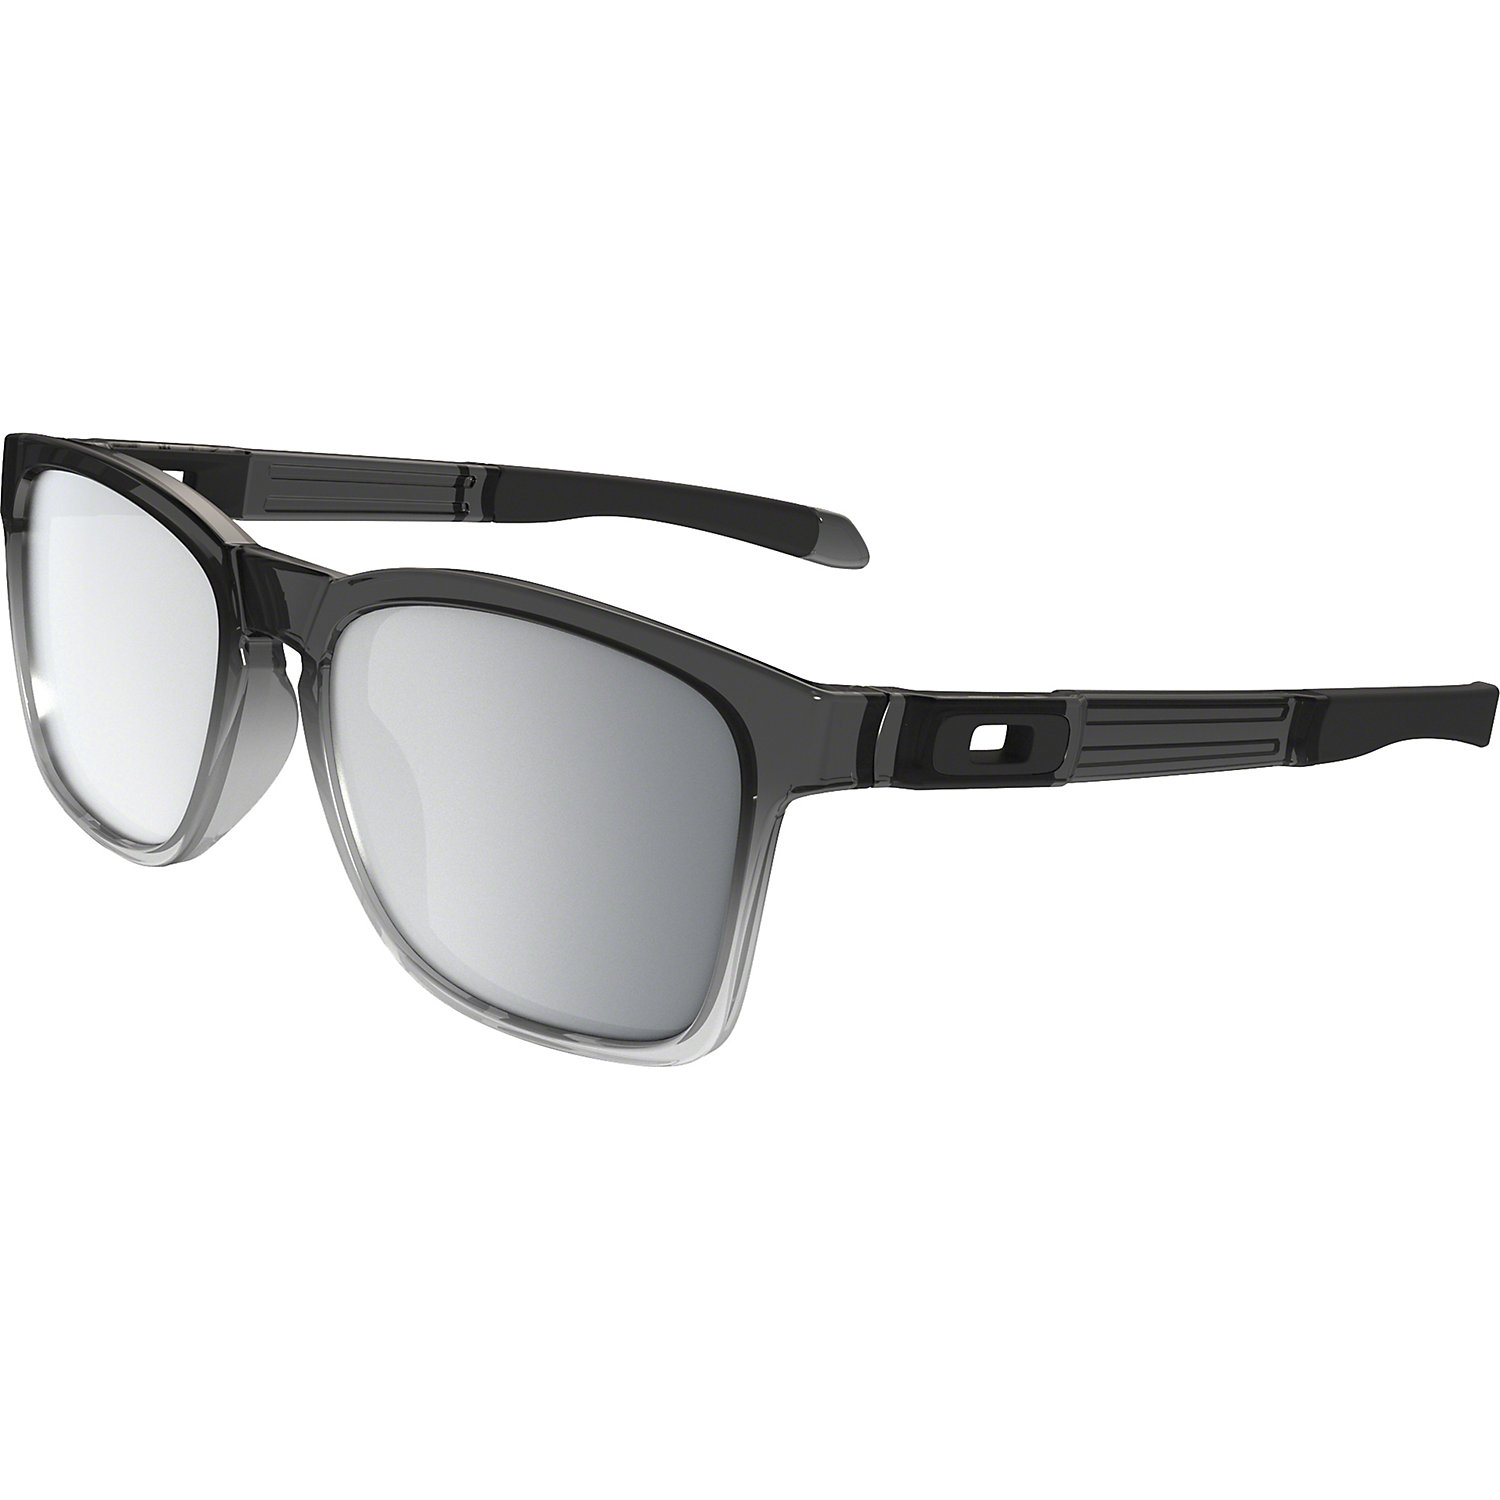 cd07b964e78 Oakley Catalyst Sunglasses. Double tap to zoom